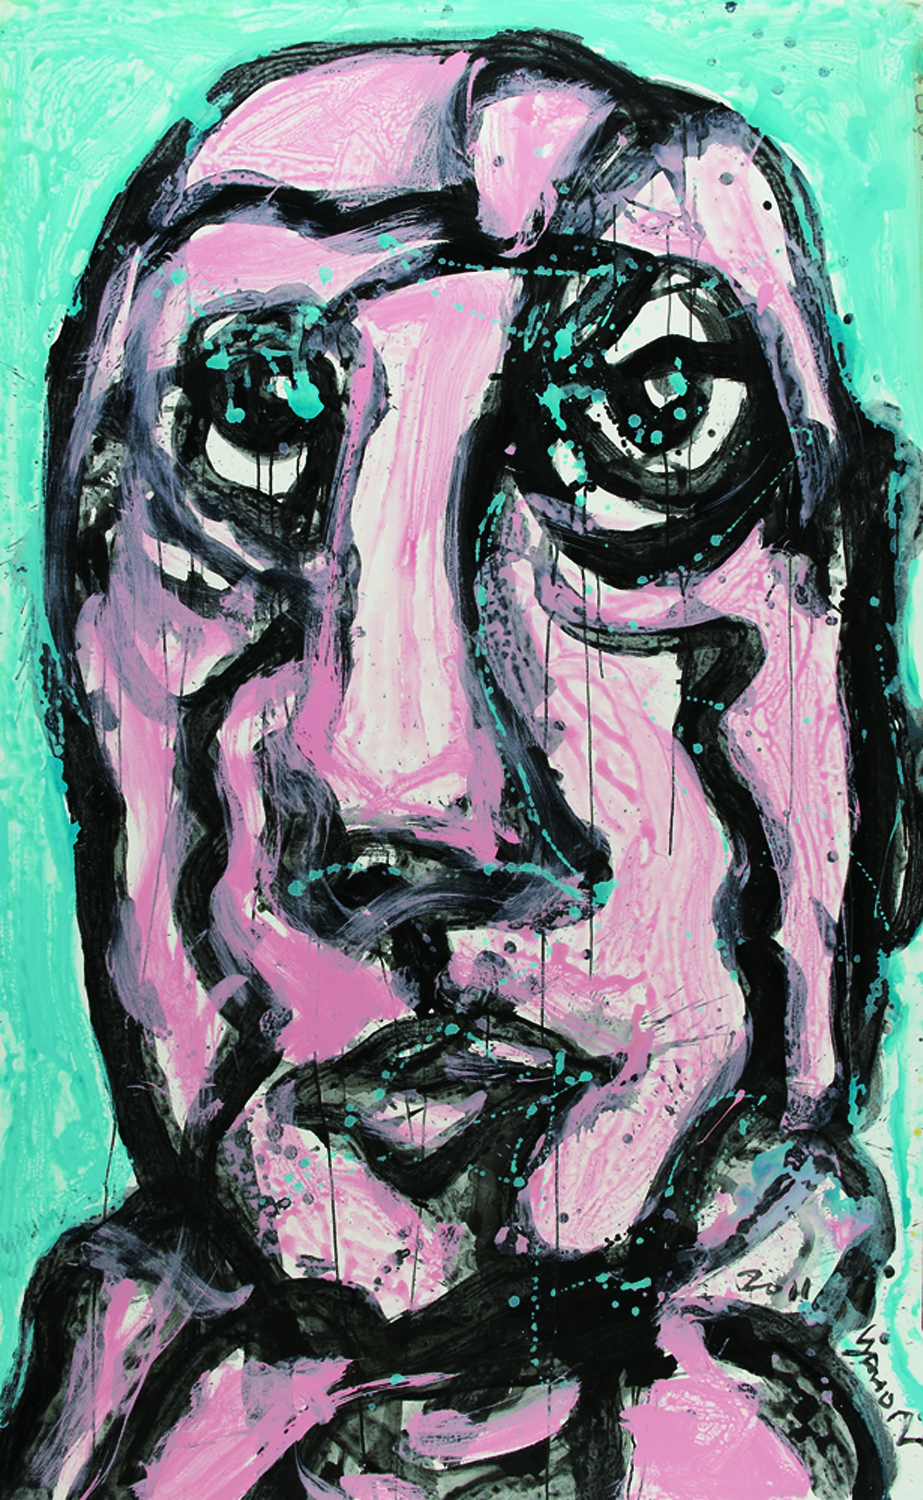 面對面 Face To Face 264x151cm 2011 壓克力‧畫布 Acrylic on canvas (1).jpg